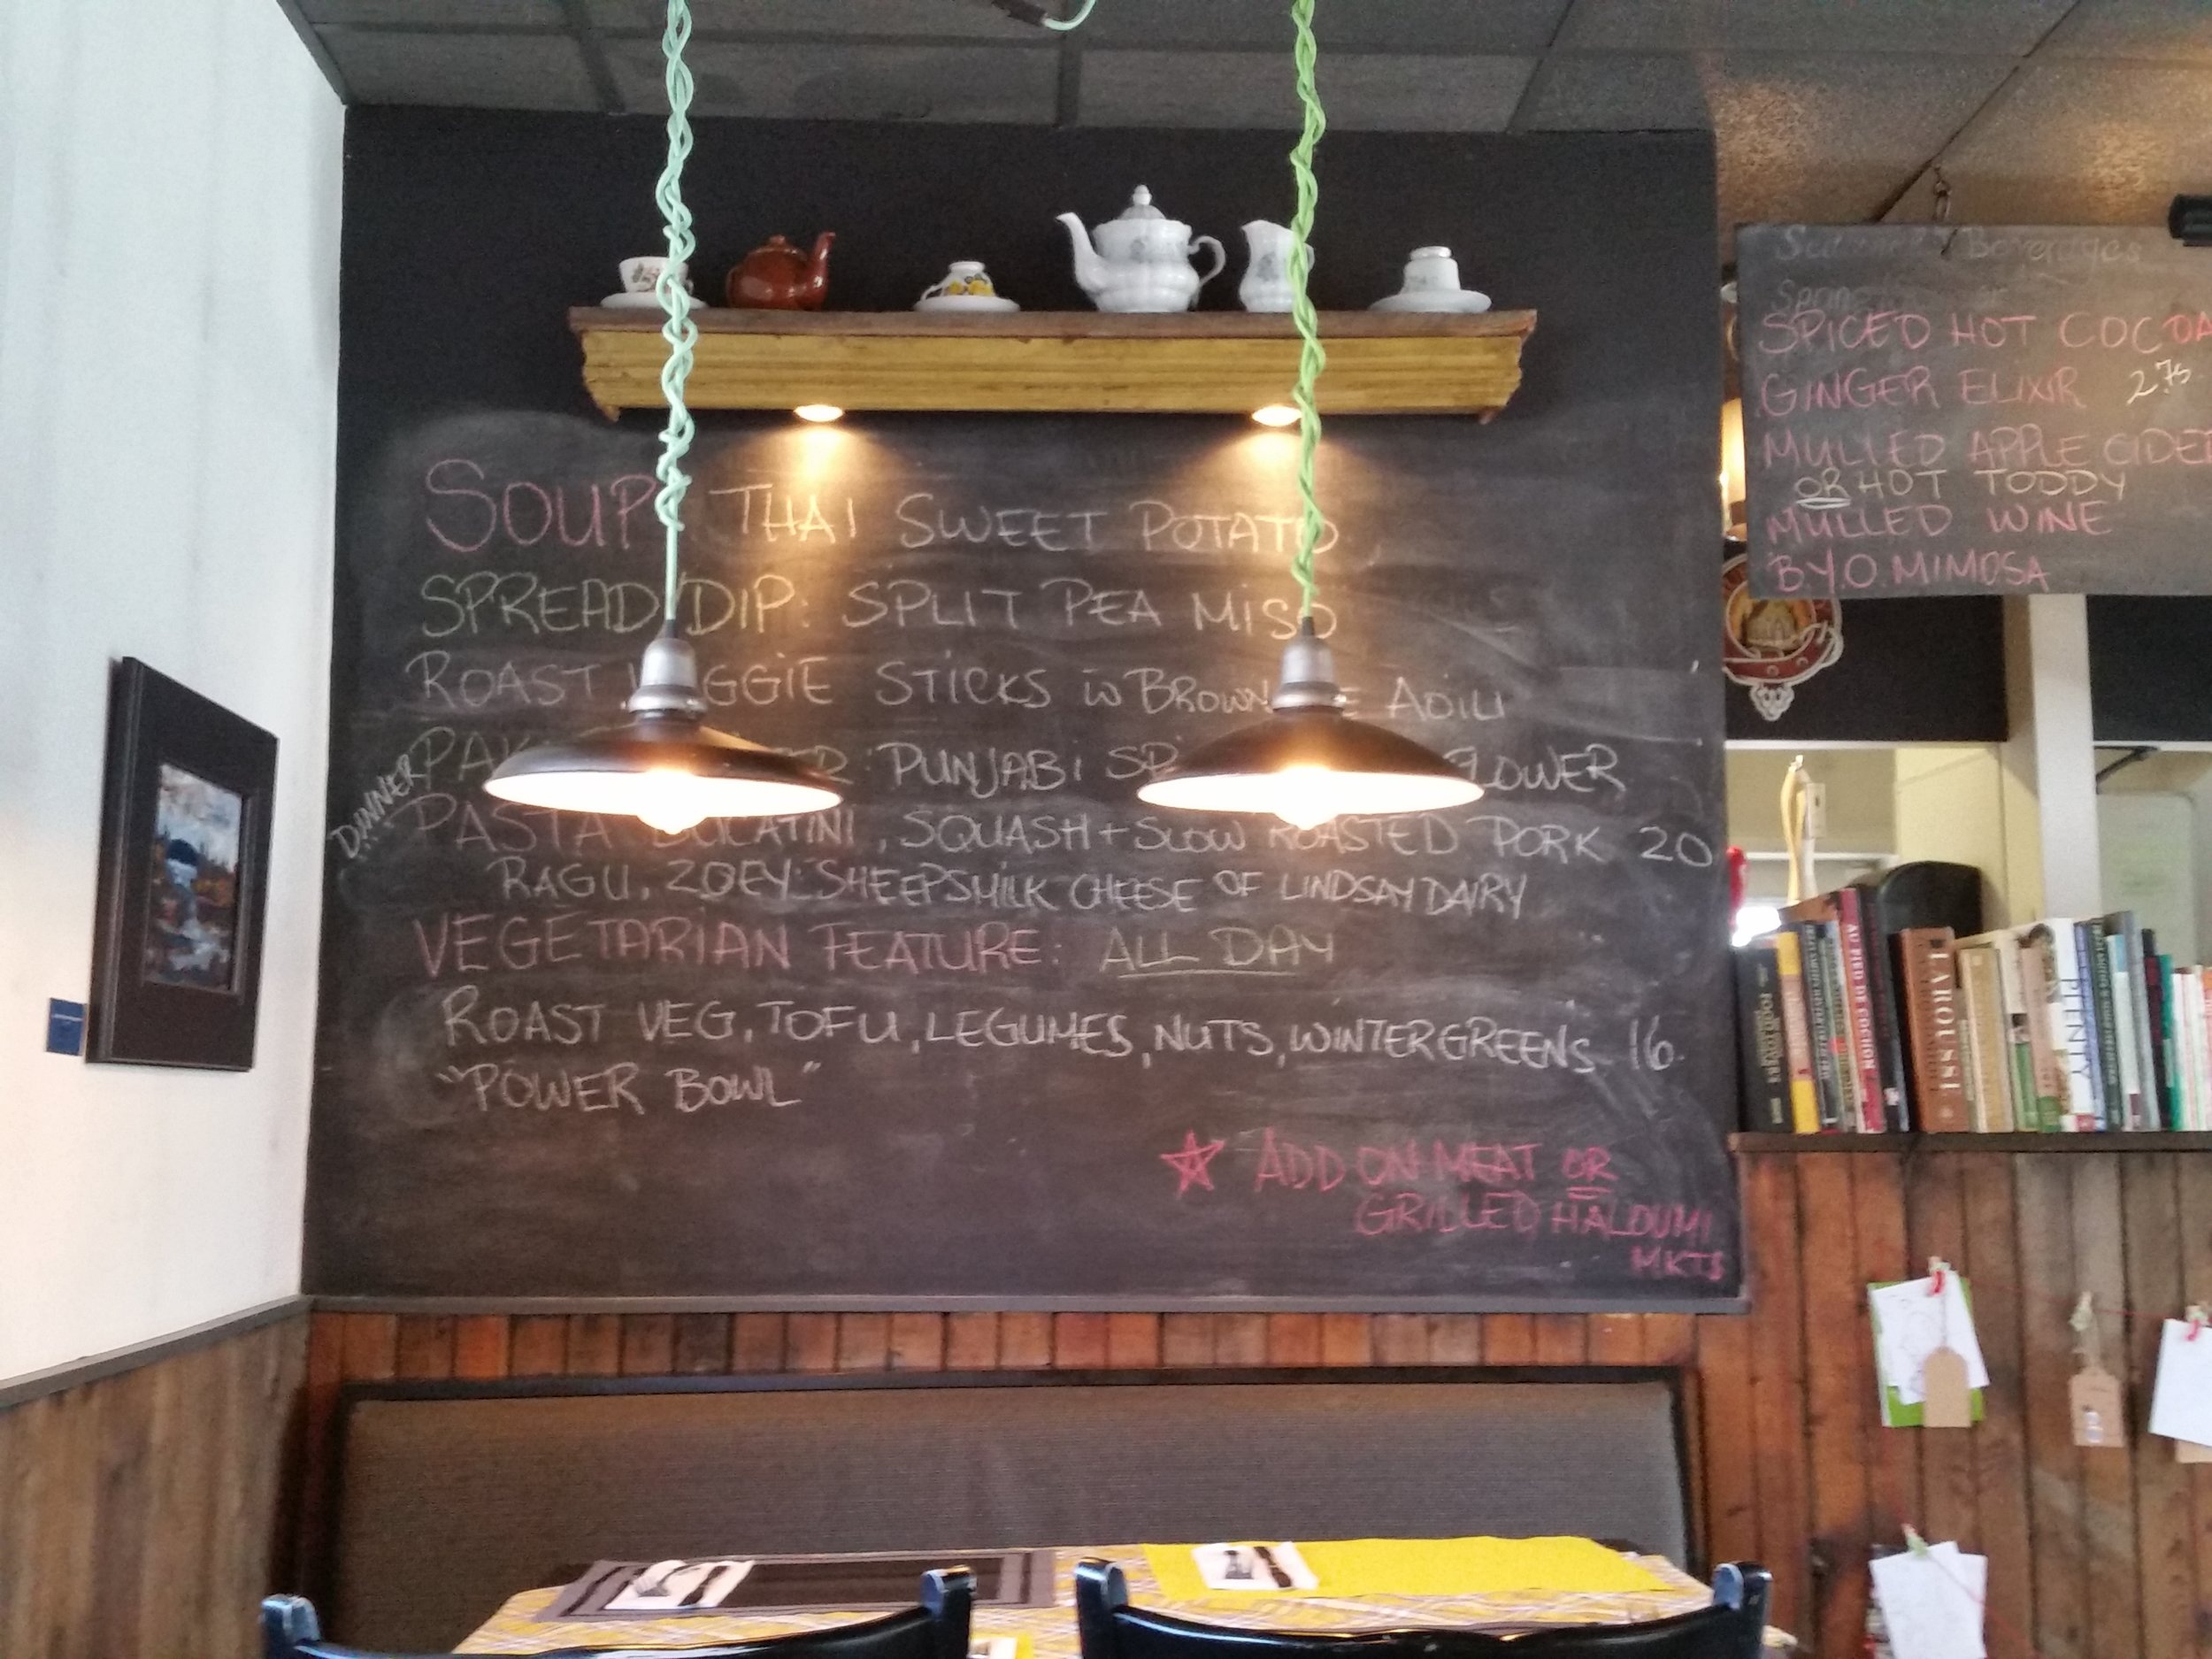 Chalkboard menu of the current Specials.